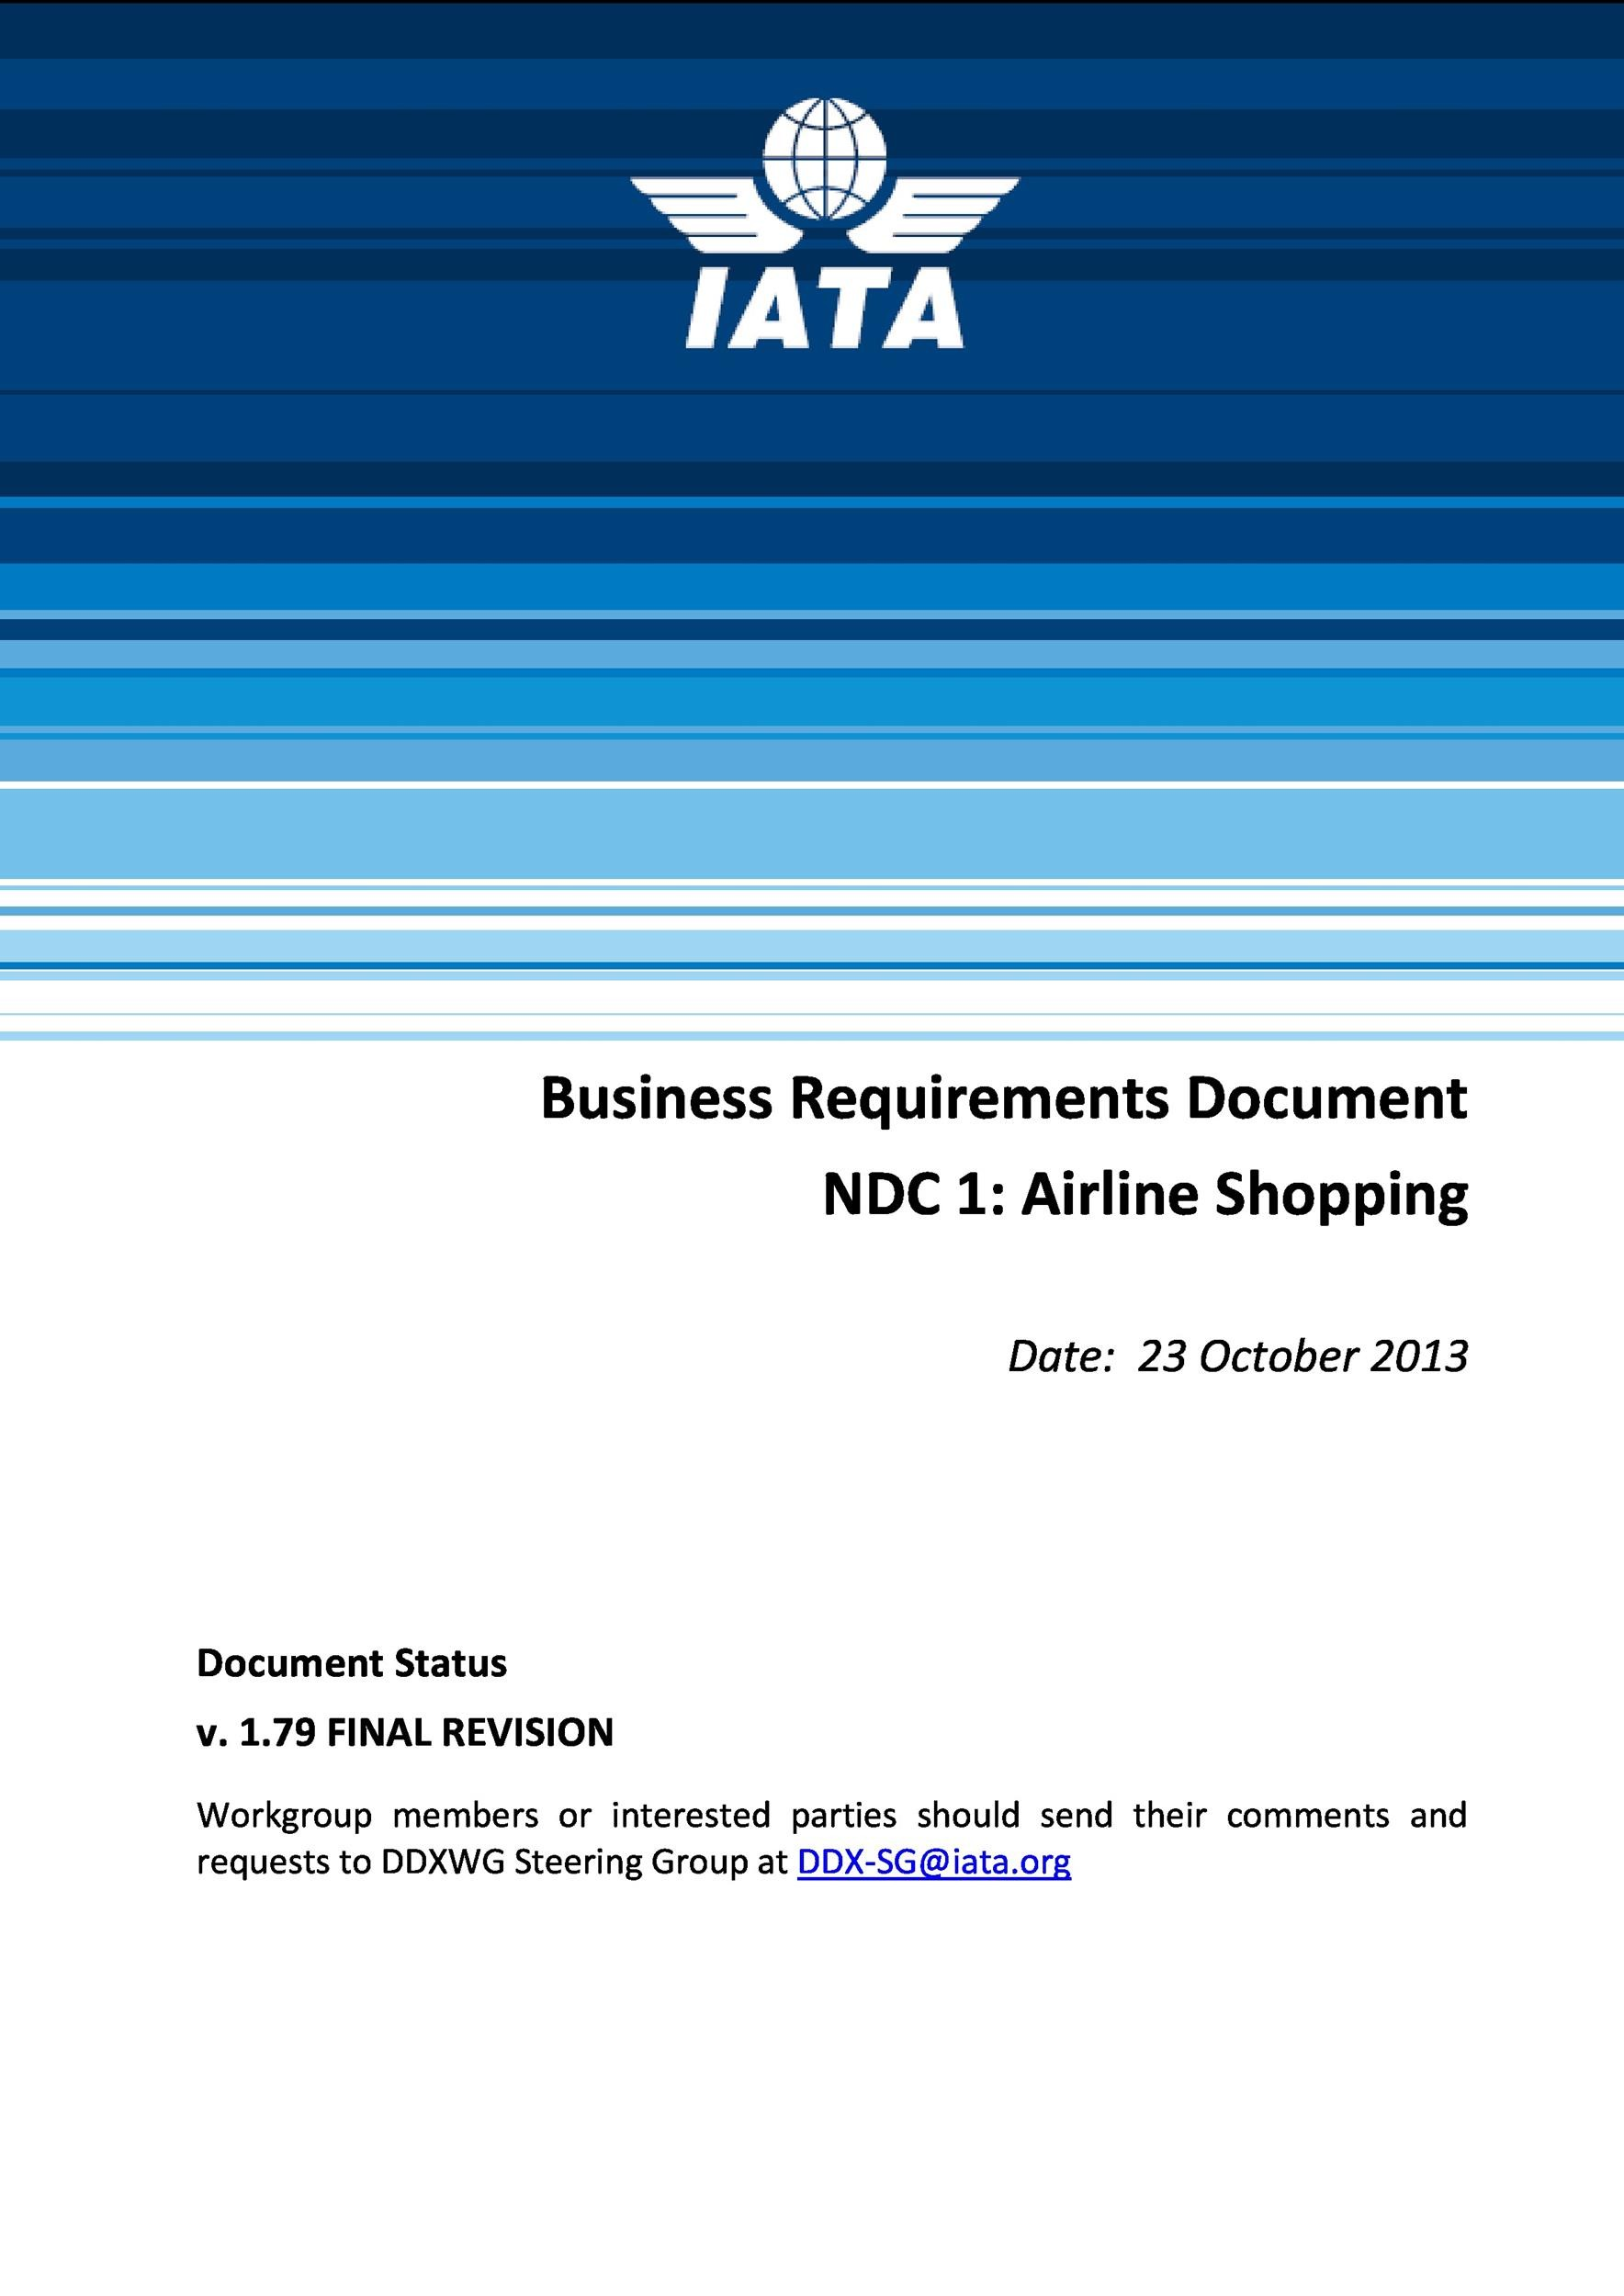 Business requirements document template demirediffusion 40 simple business requirements document templates template lab friedricerecipe Images